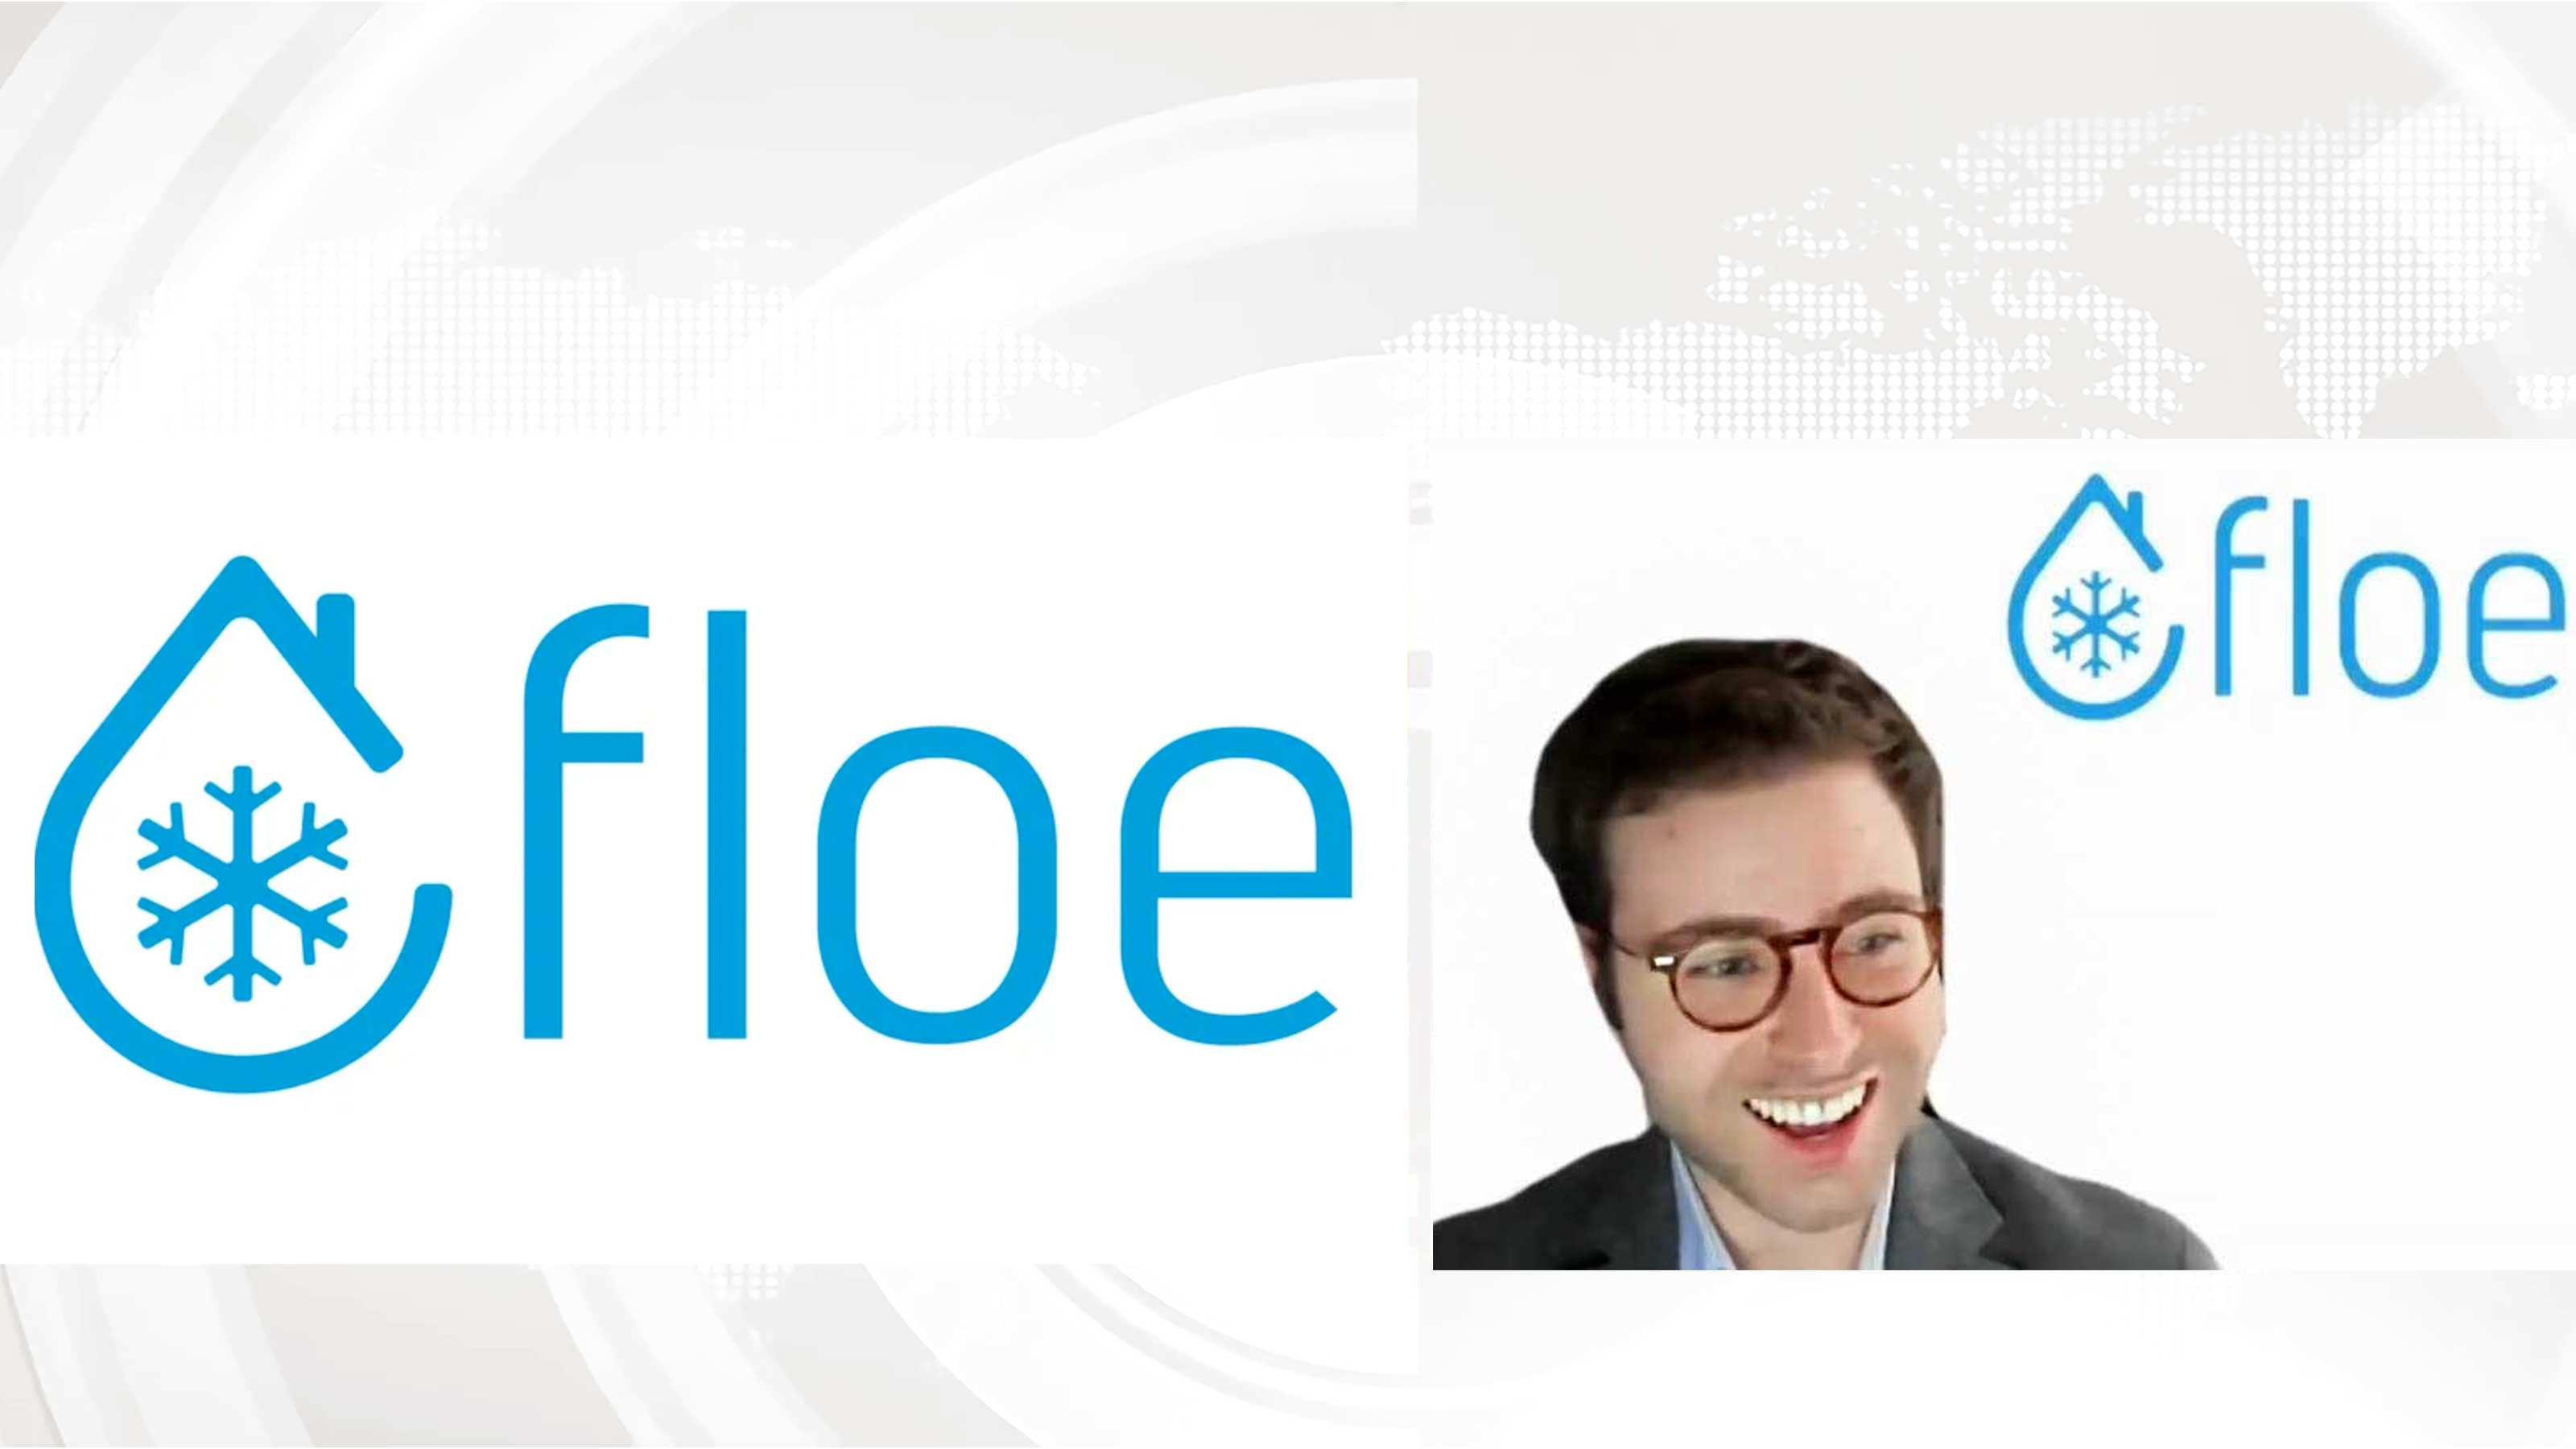 David Dellal, CEO and founder of Floe